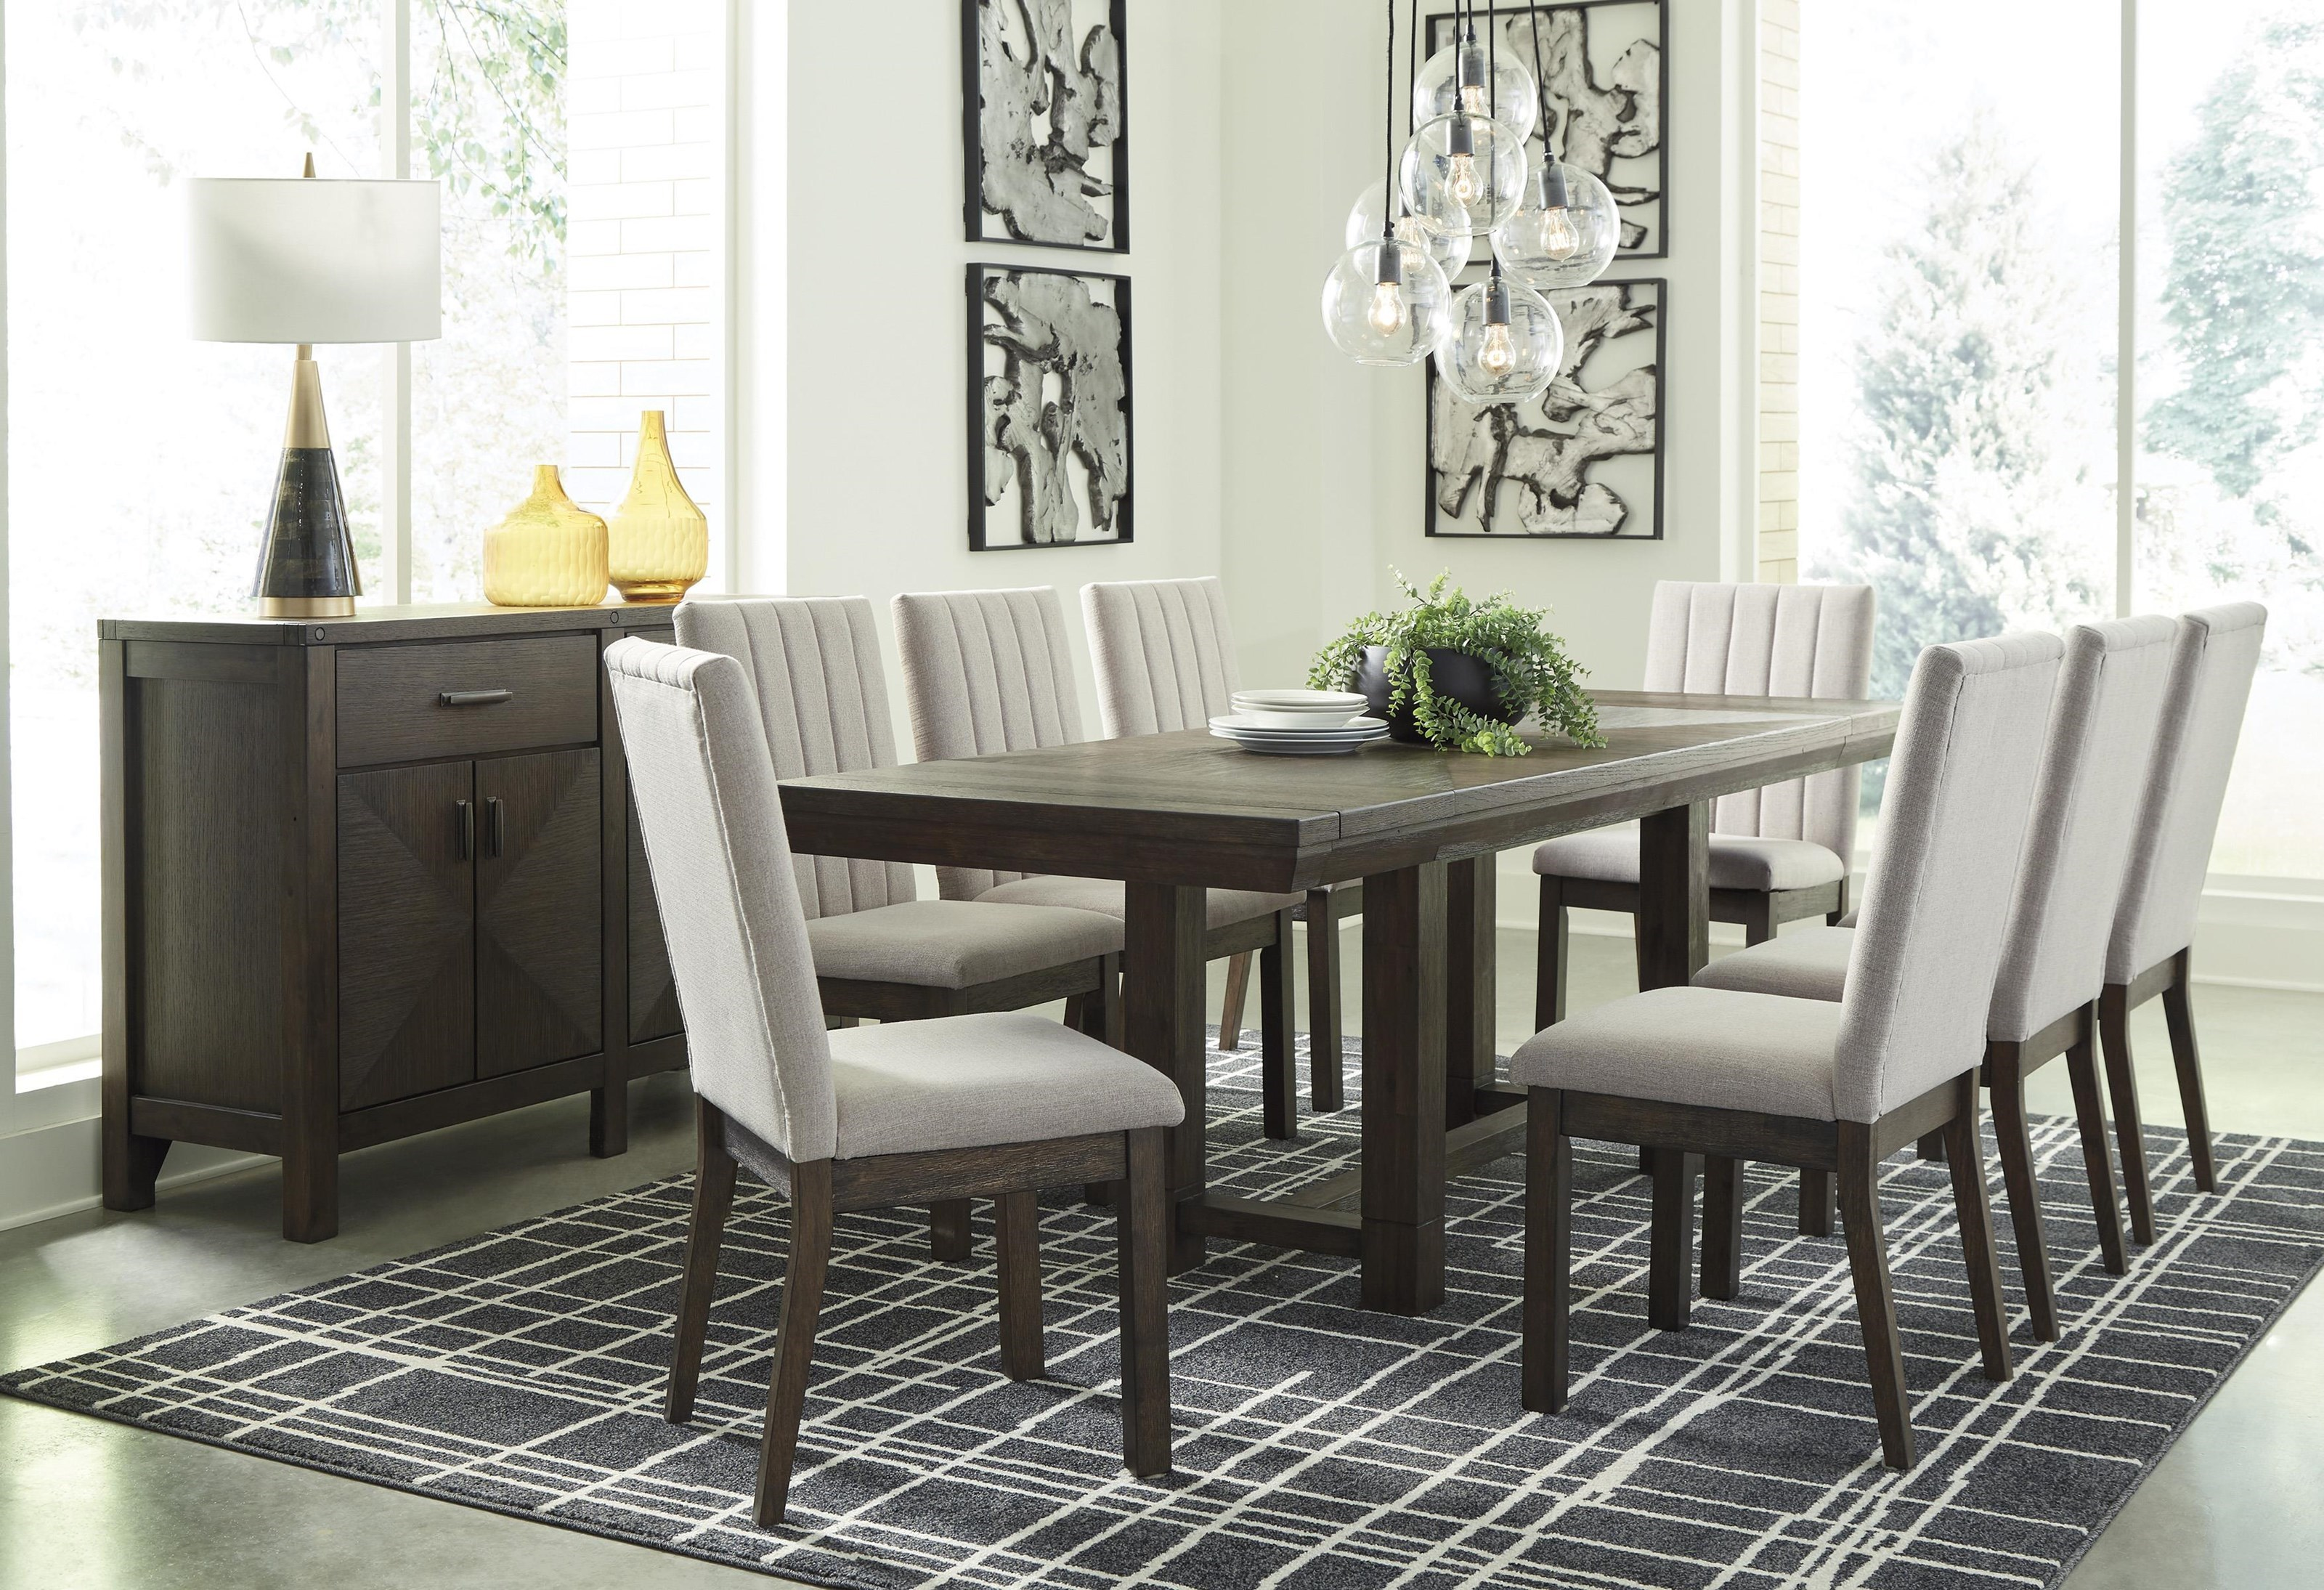 Ashley Furniture Dellbeck D748 45 8x01 60 10 Pc Table 8 Uph Side Chairs And Server Set Sam Levitz Outlet Dining 7 Or More Piece Sets